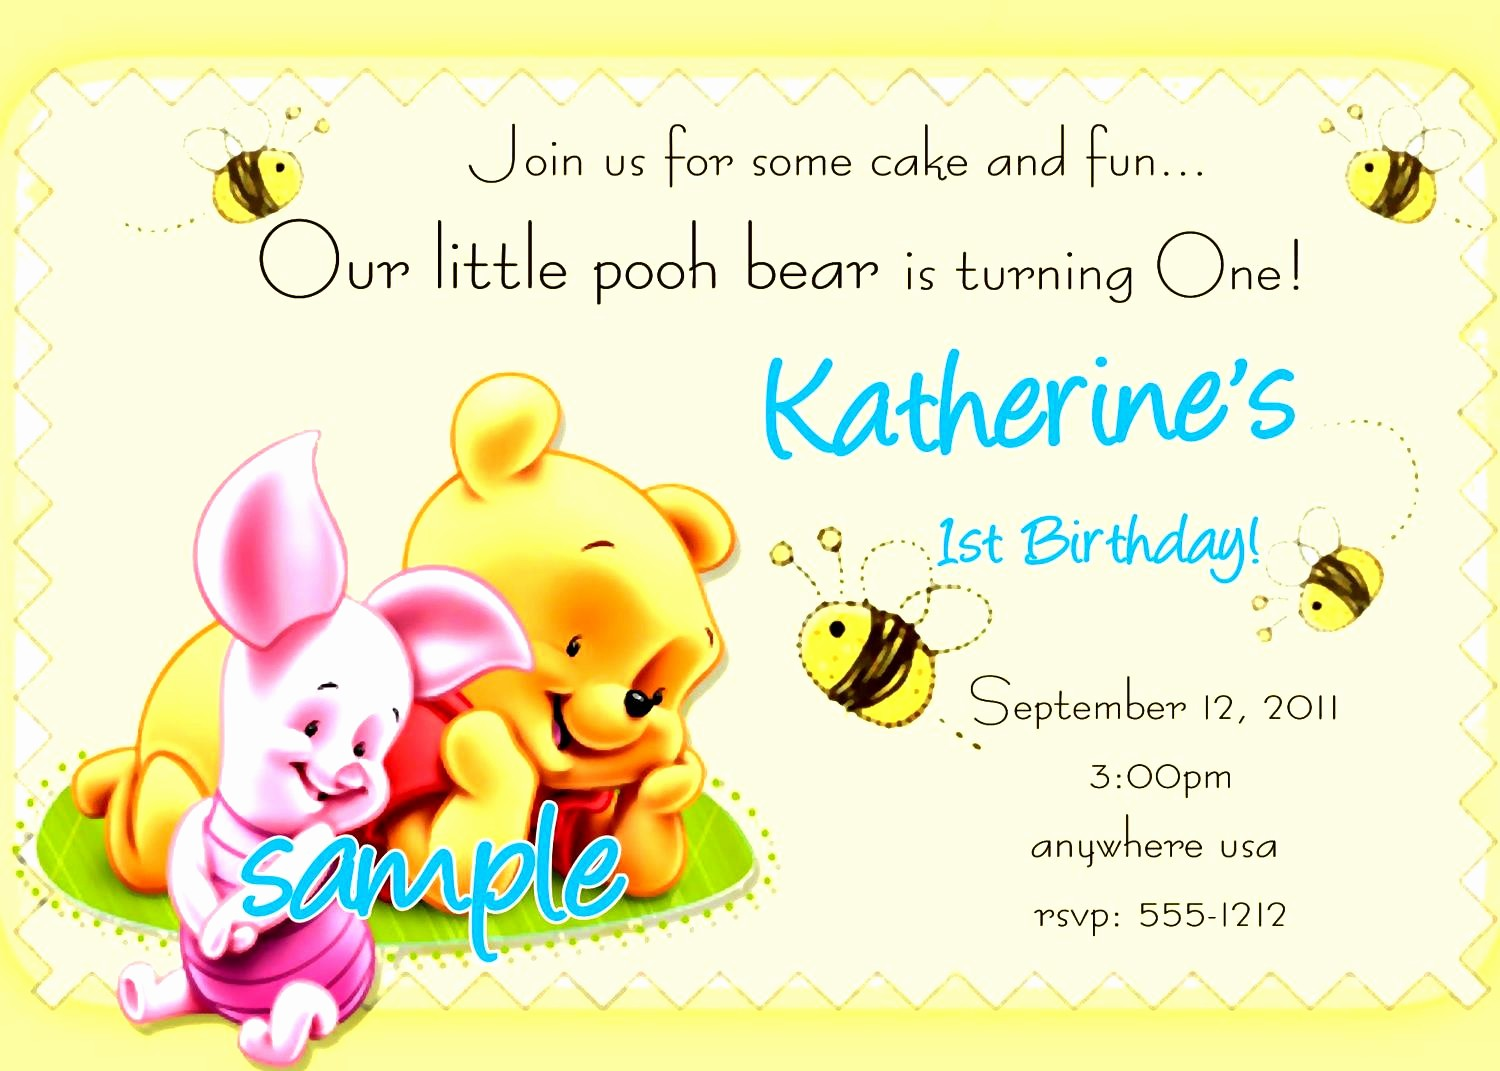 Kids Birthday Party Invites Templates Luxury 21 Kids Birthday Invitation Wording that We Can Make